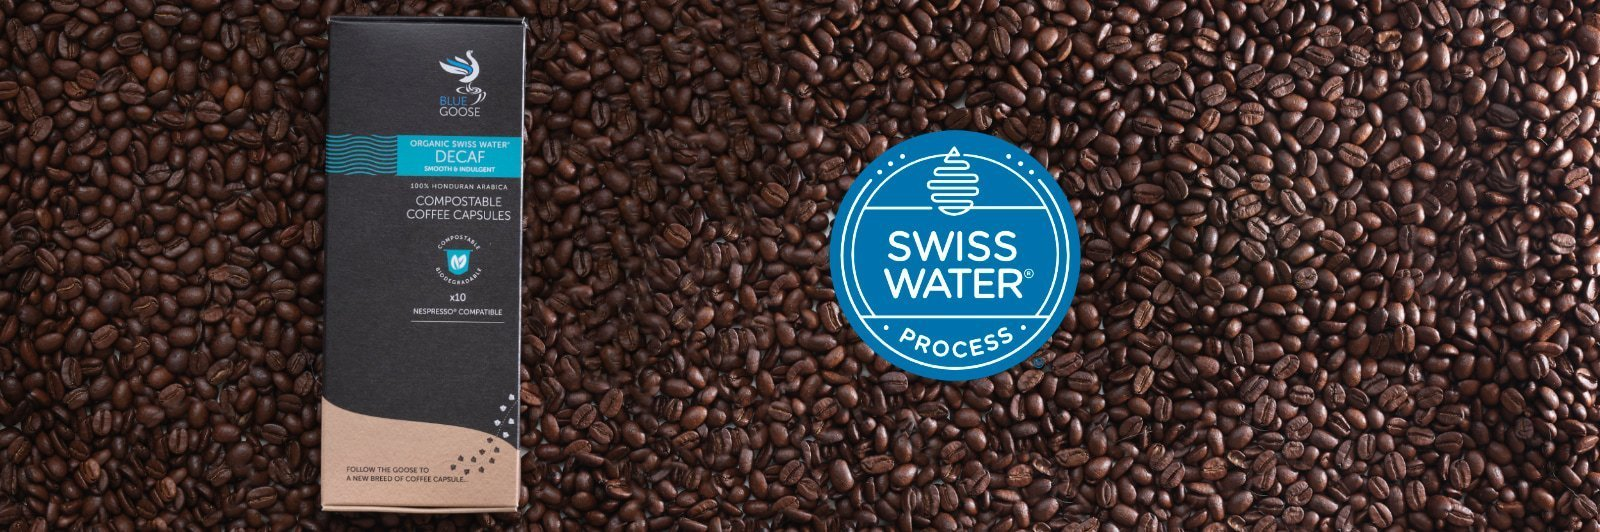 What does Swiss Water Decaf mean - Blue Goose Swiss Water Compostable Biodegradable Coffee Capsules pods Nespresso (r) compatible